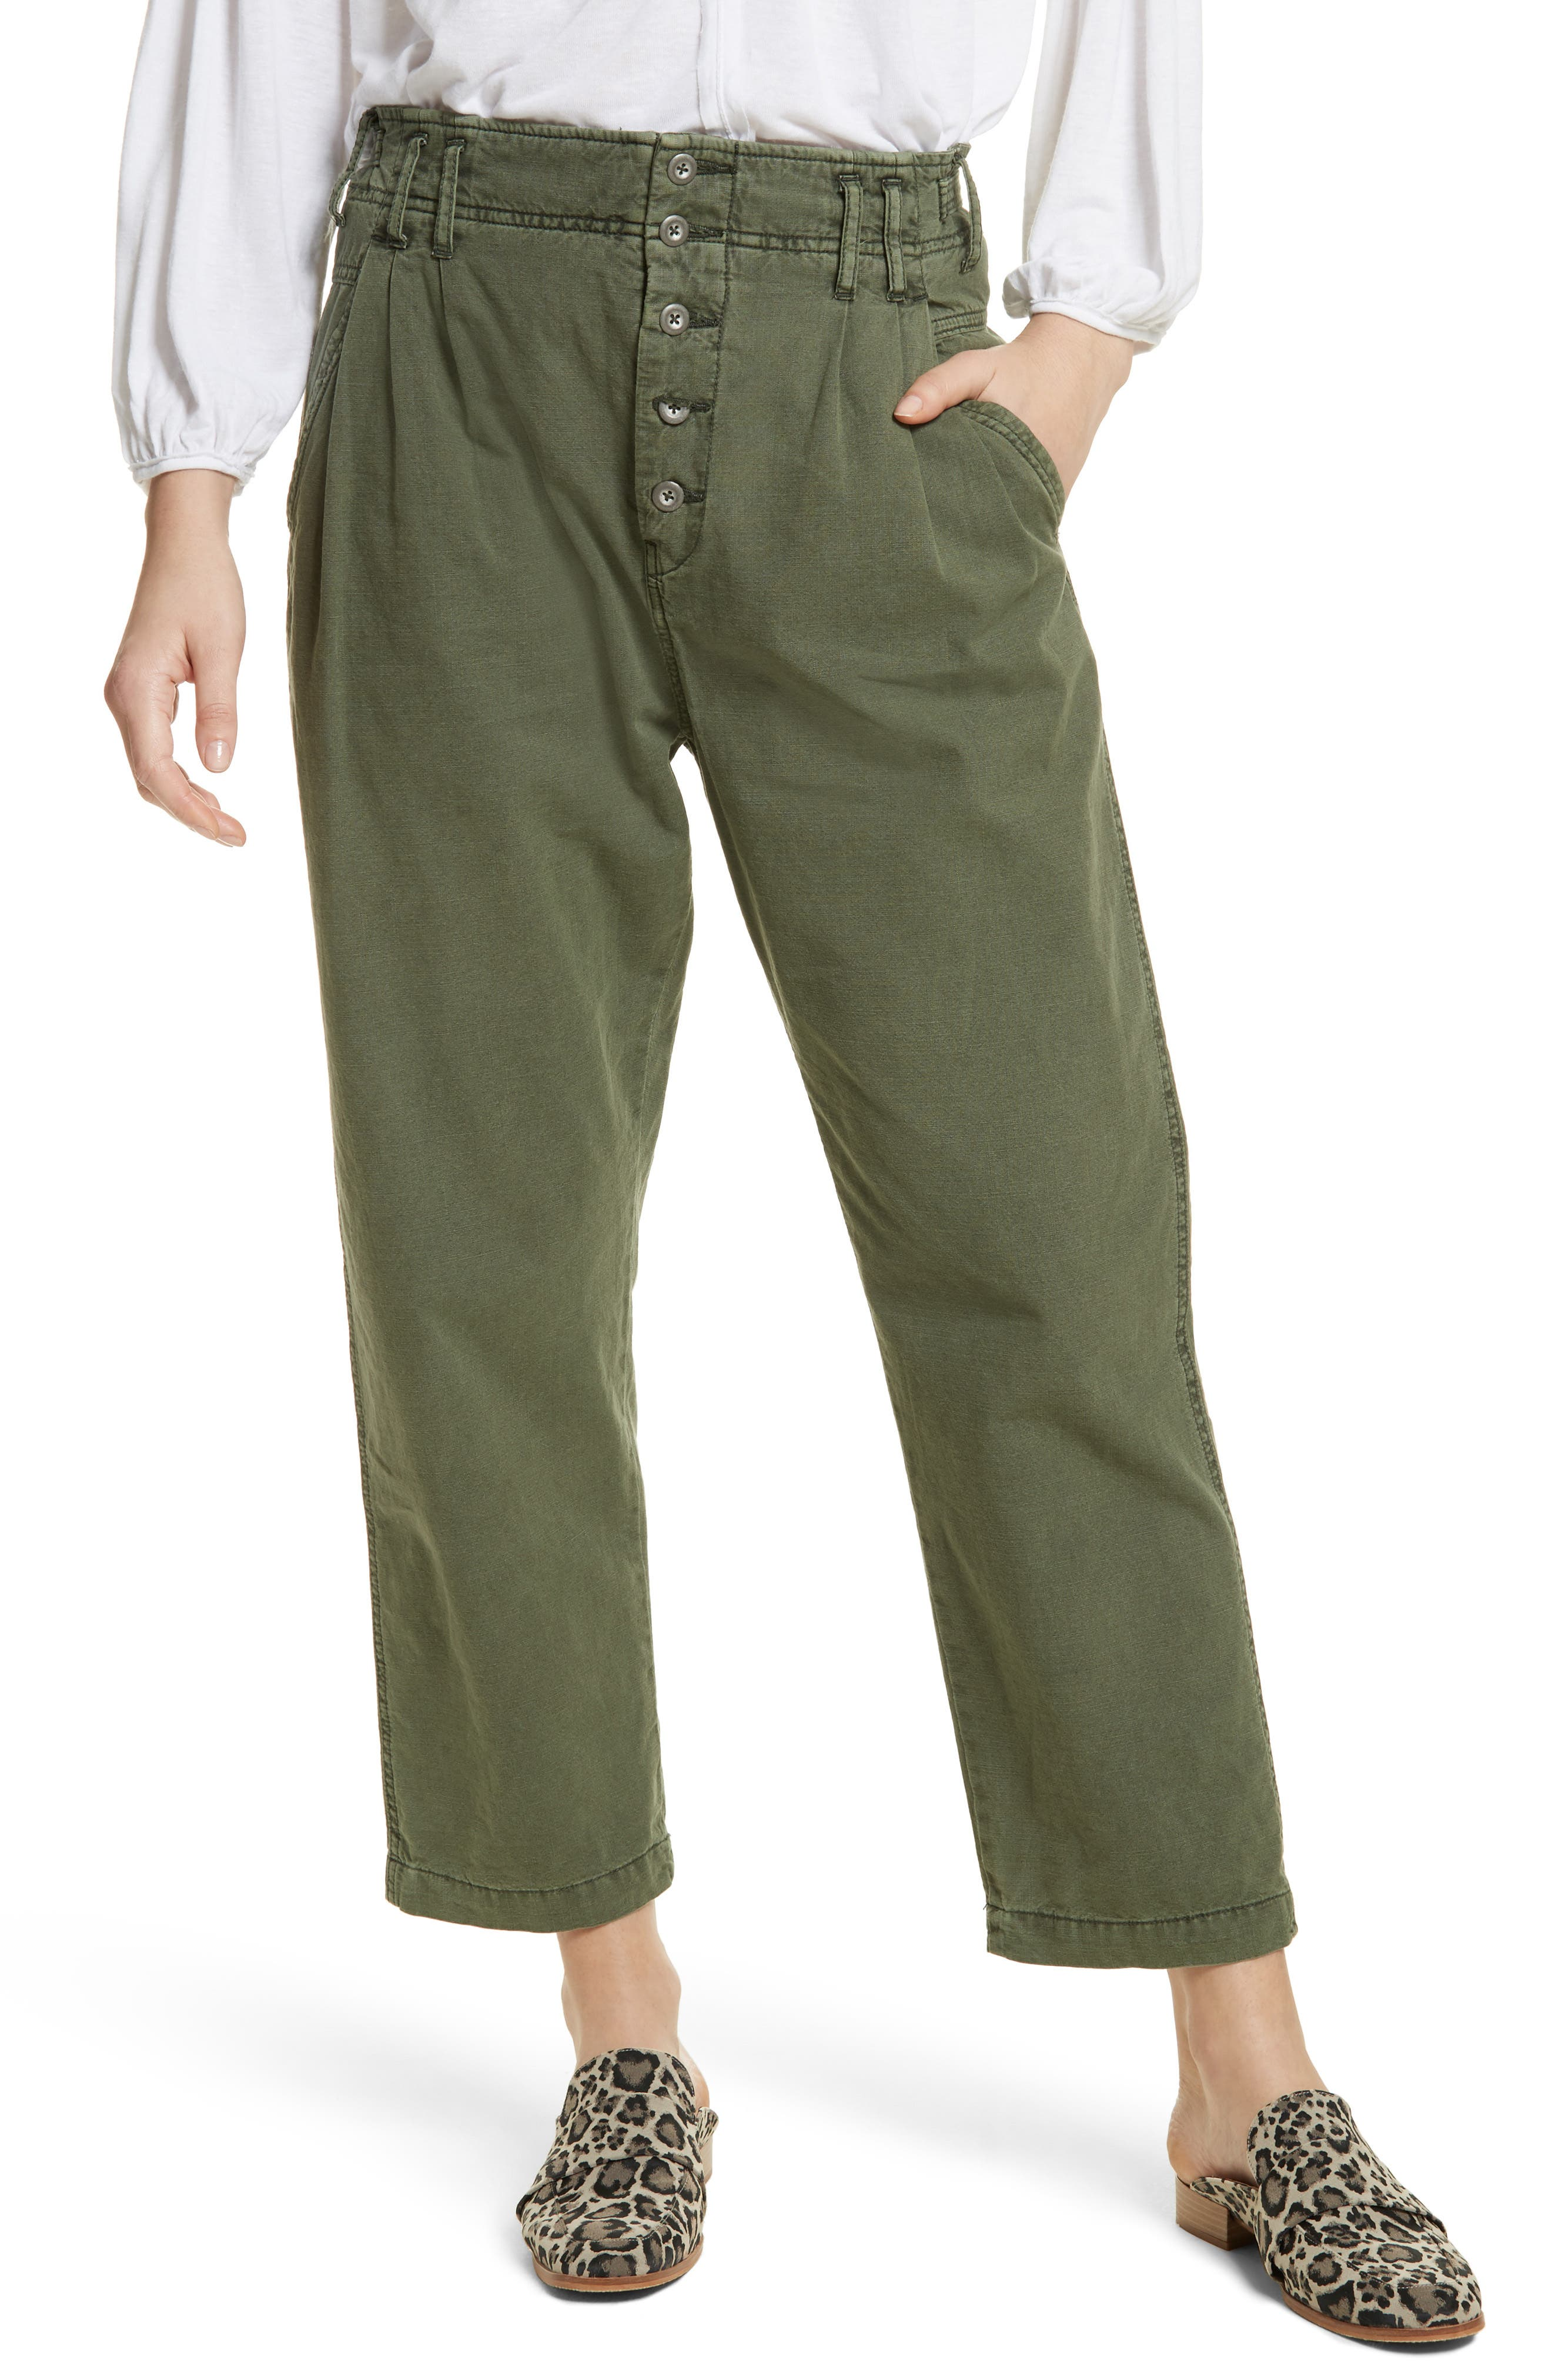 Compass Star Trousers,                         Main,                         color, 328